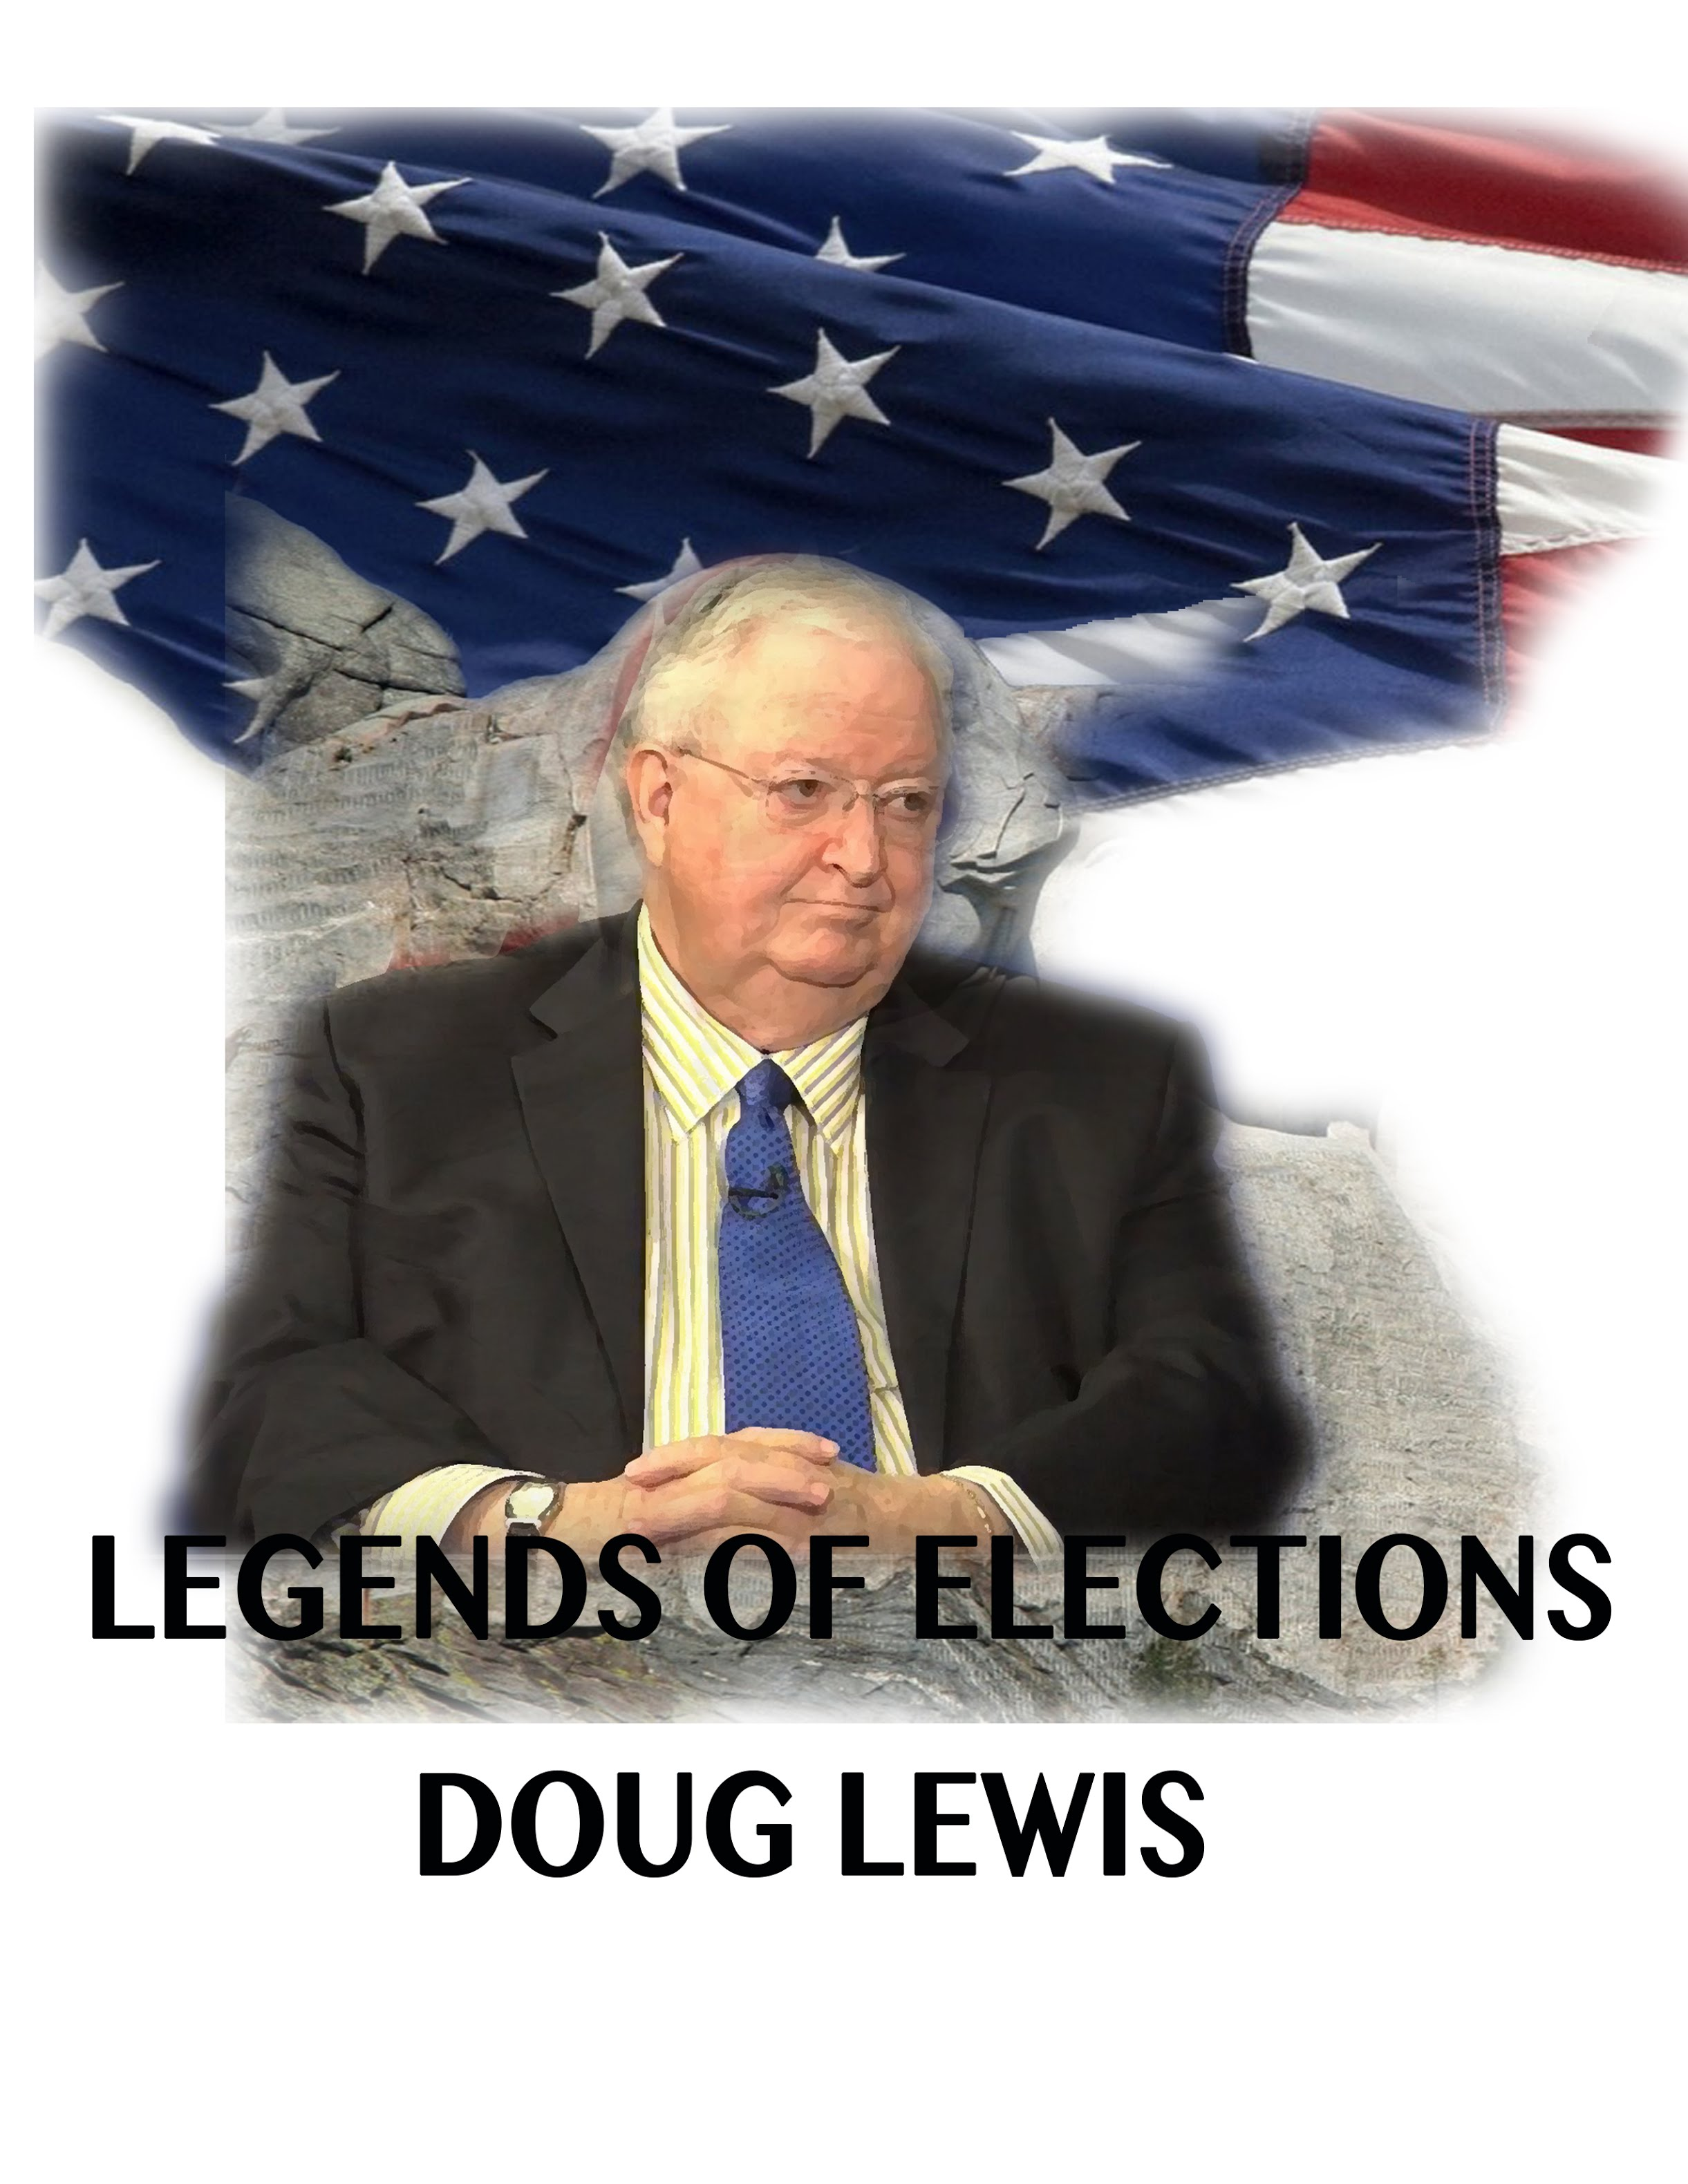 LEGENDS-OF-ELECTIONS-Doug-Lewis